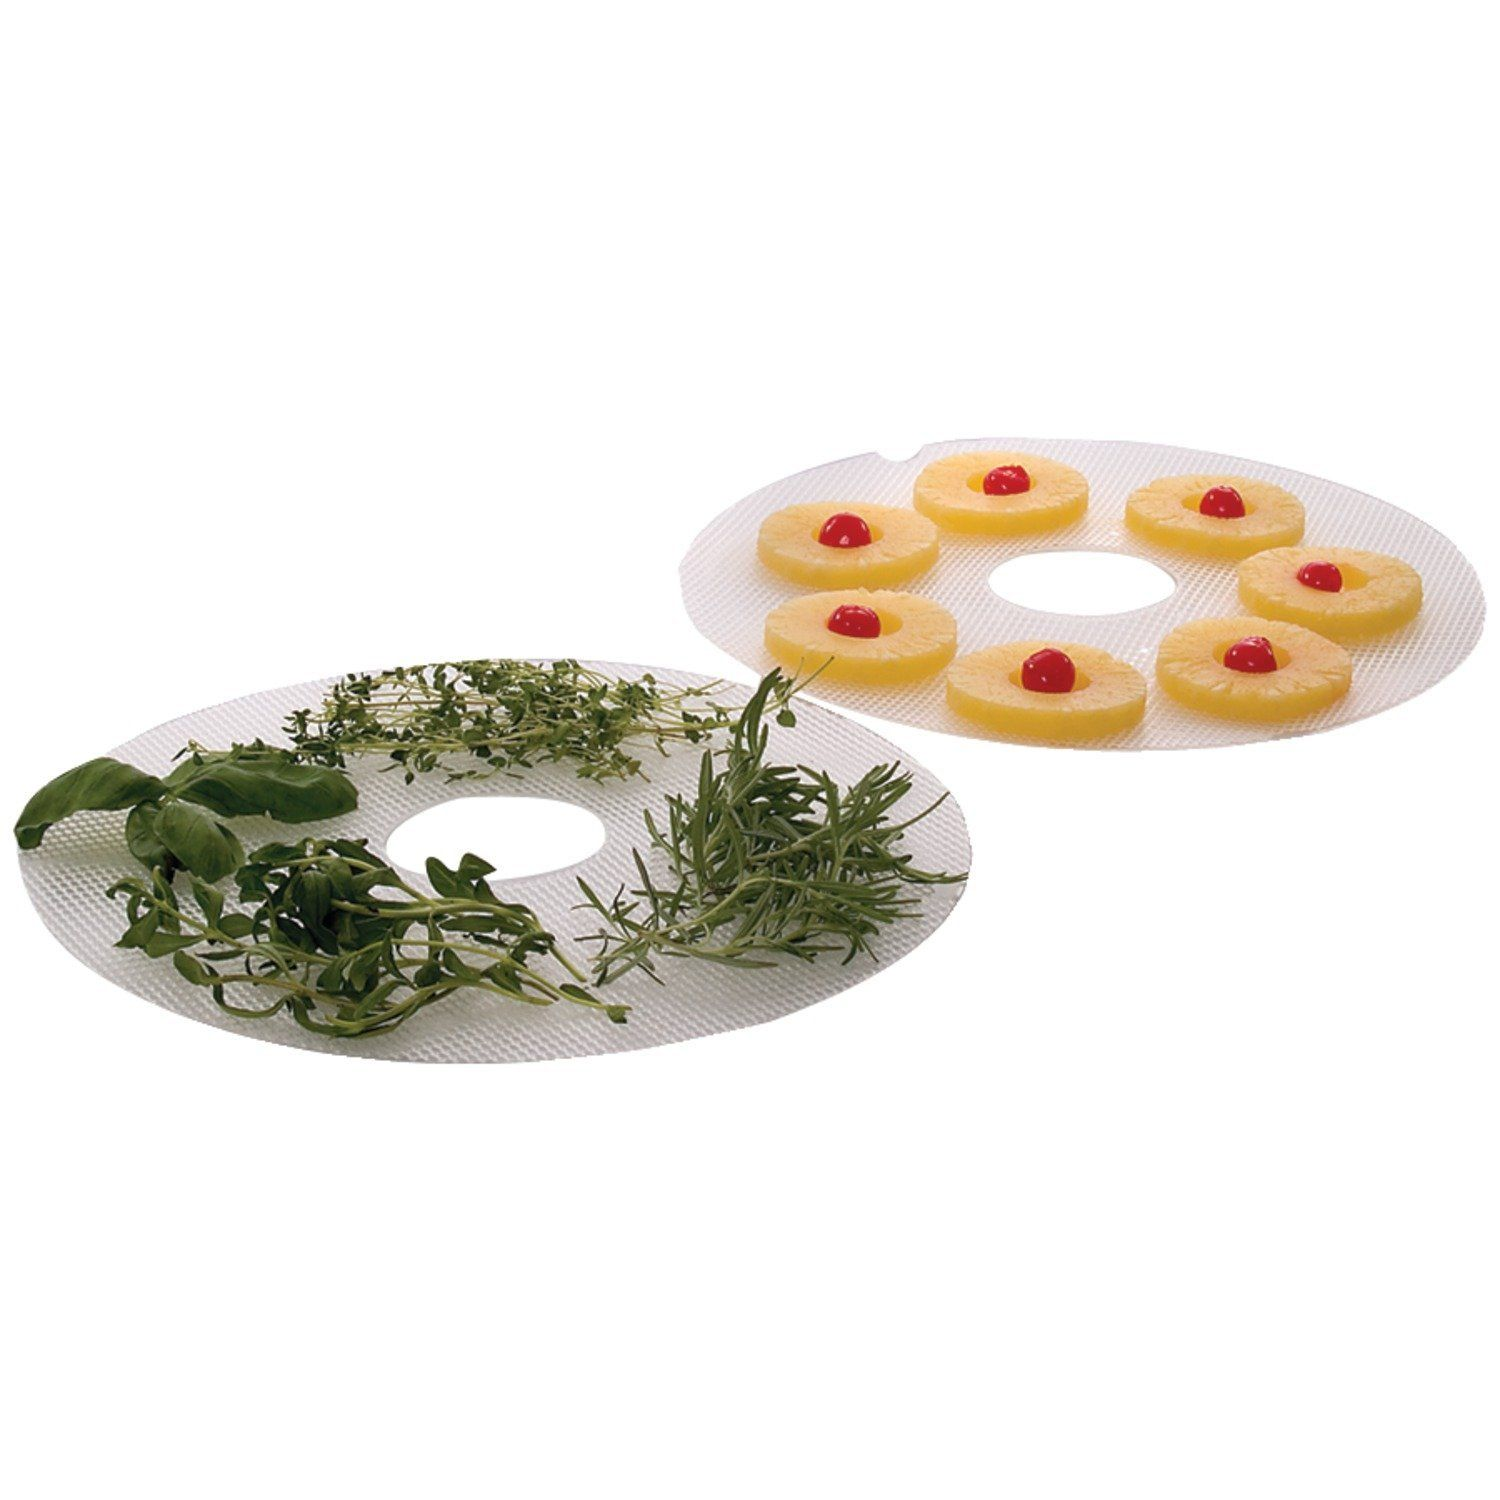 Amazon.com: Nesco LM-2-6 Clean-A-Screen Tray for FD-28JX/FD-37/FD-60/FD-61/FD-61WHC/FD-75A and FD-75PR, Set of 2: Dehydrators: Kitchen & Dining